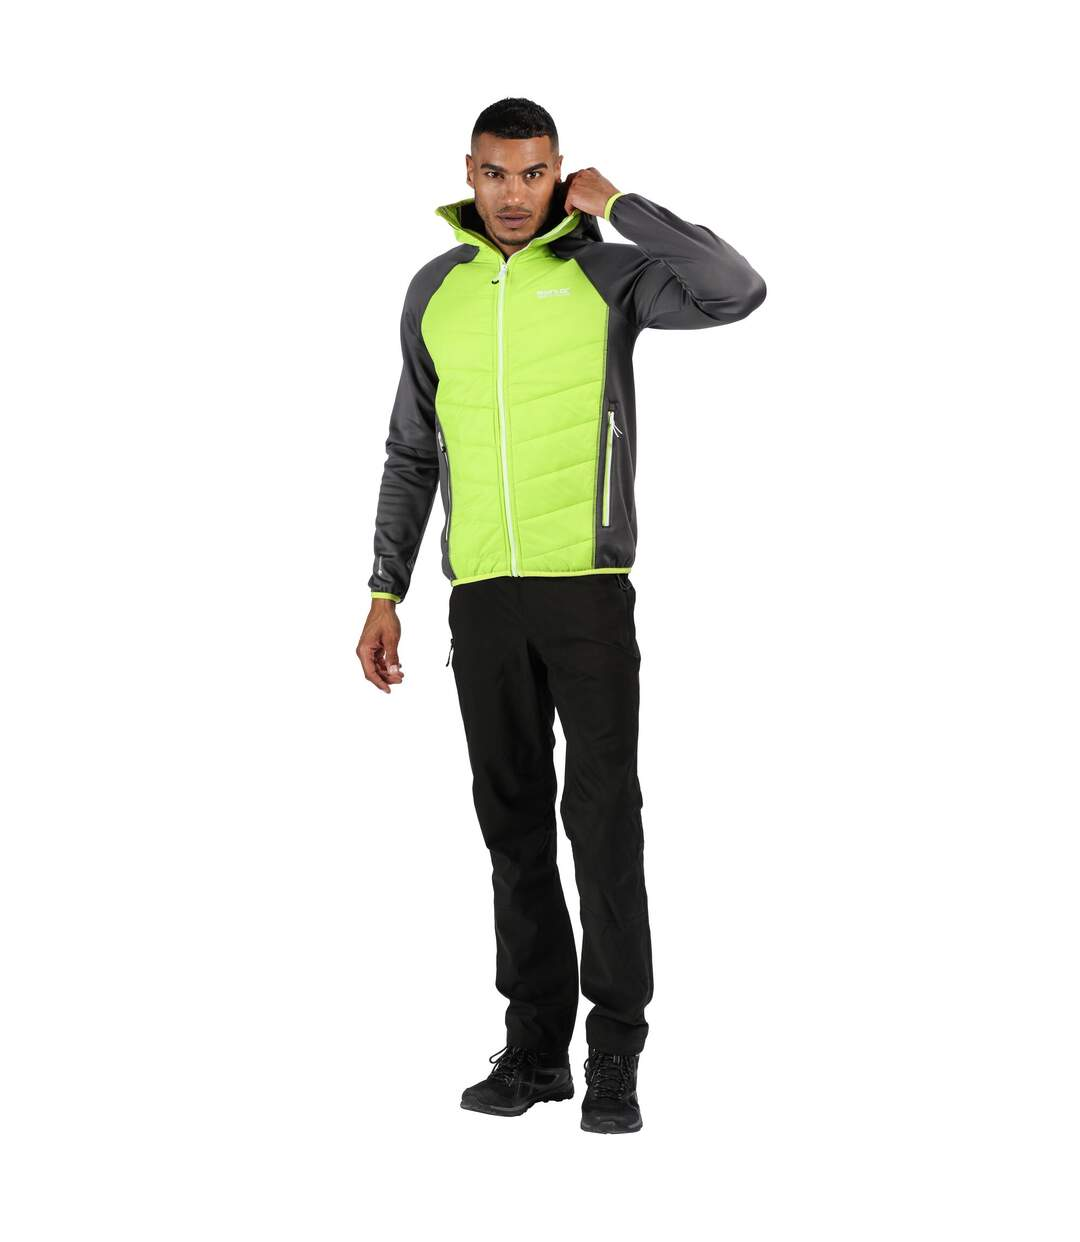 Regatta Mens Andreson IV Lightweight Insulated Hybrid Jacket (Grey/Electric Lime) - UTRG4054